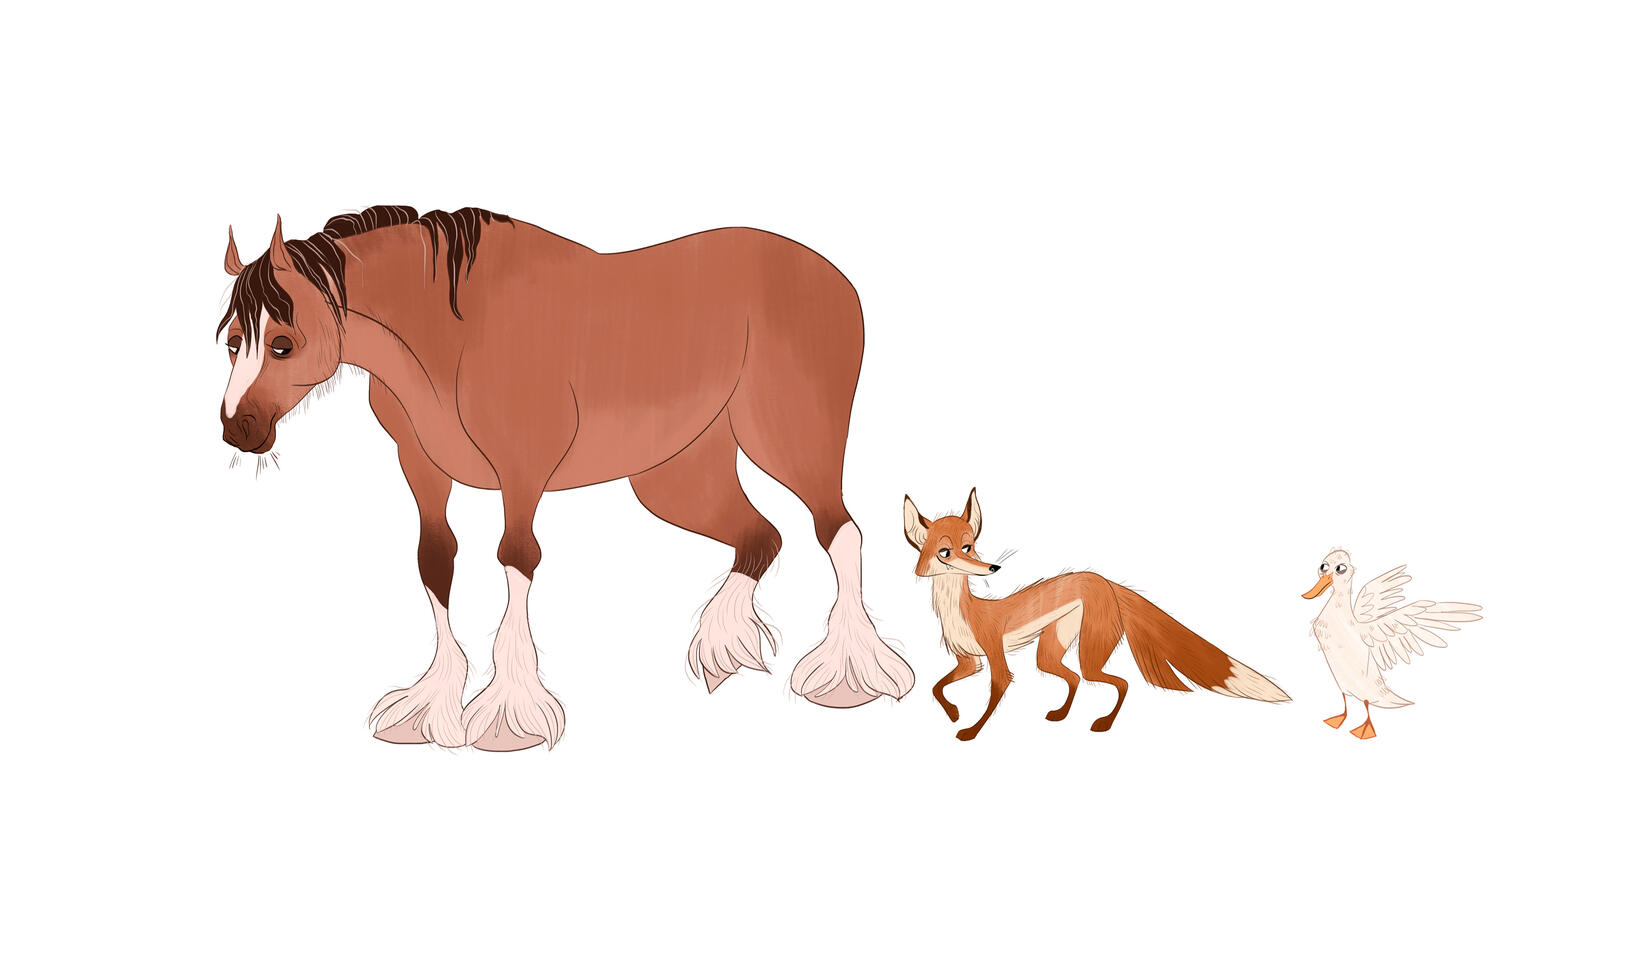 Animal character design for a horse, fox, and duck. ; Michayla Grbich